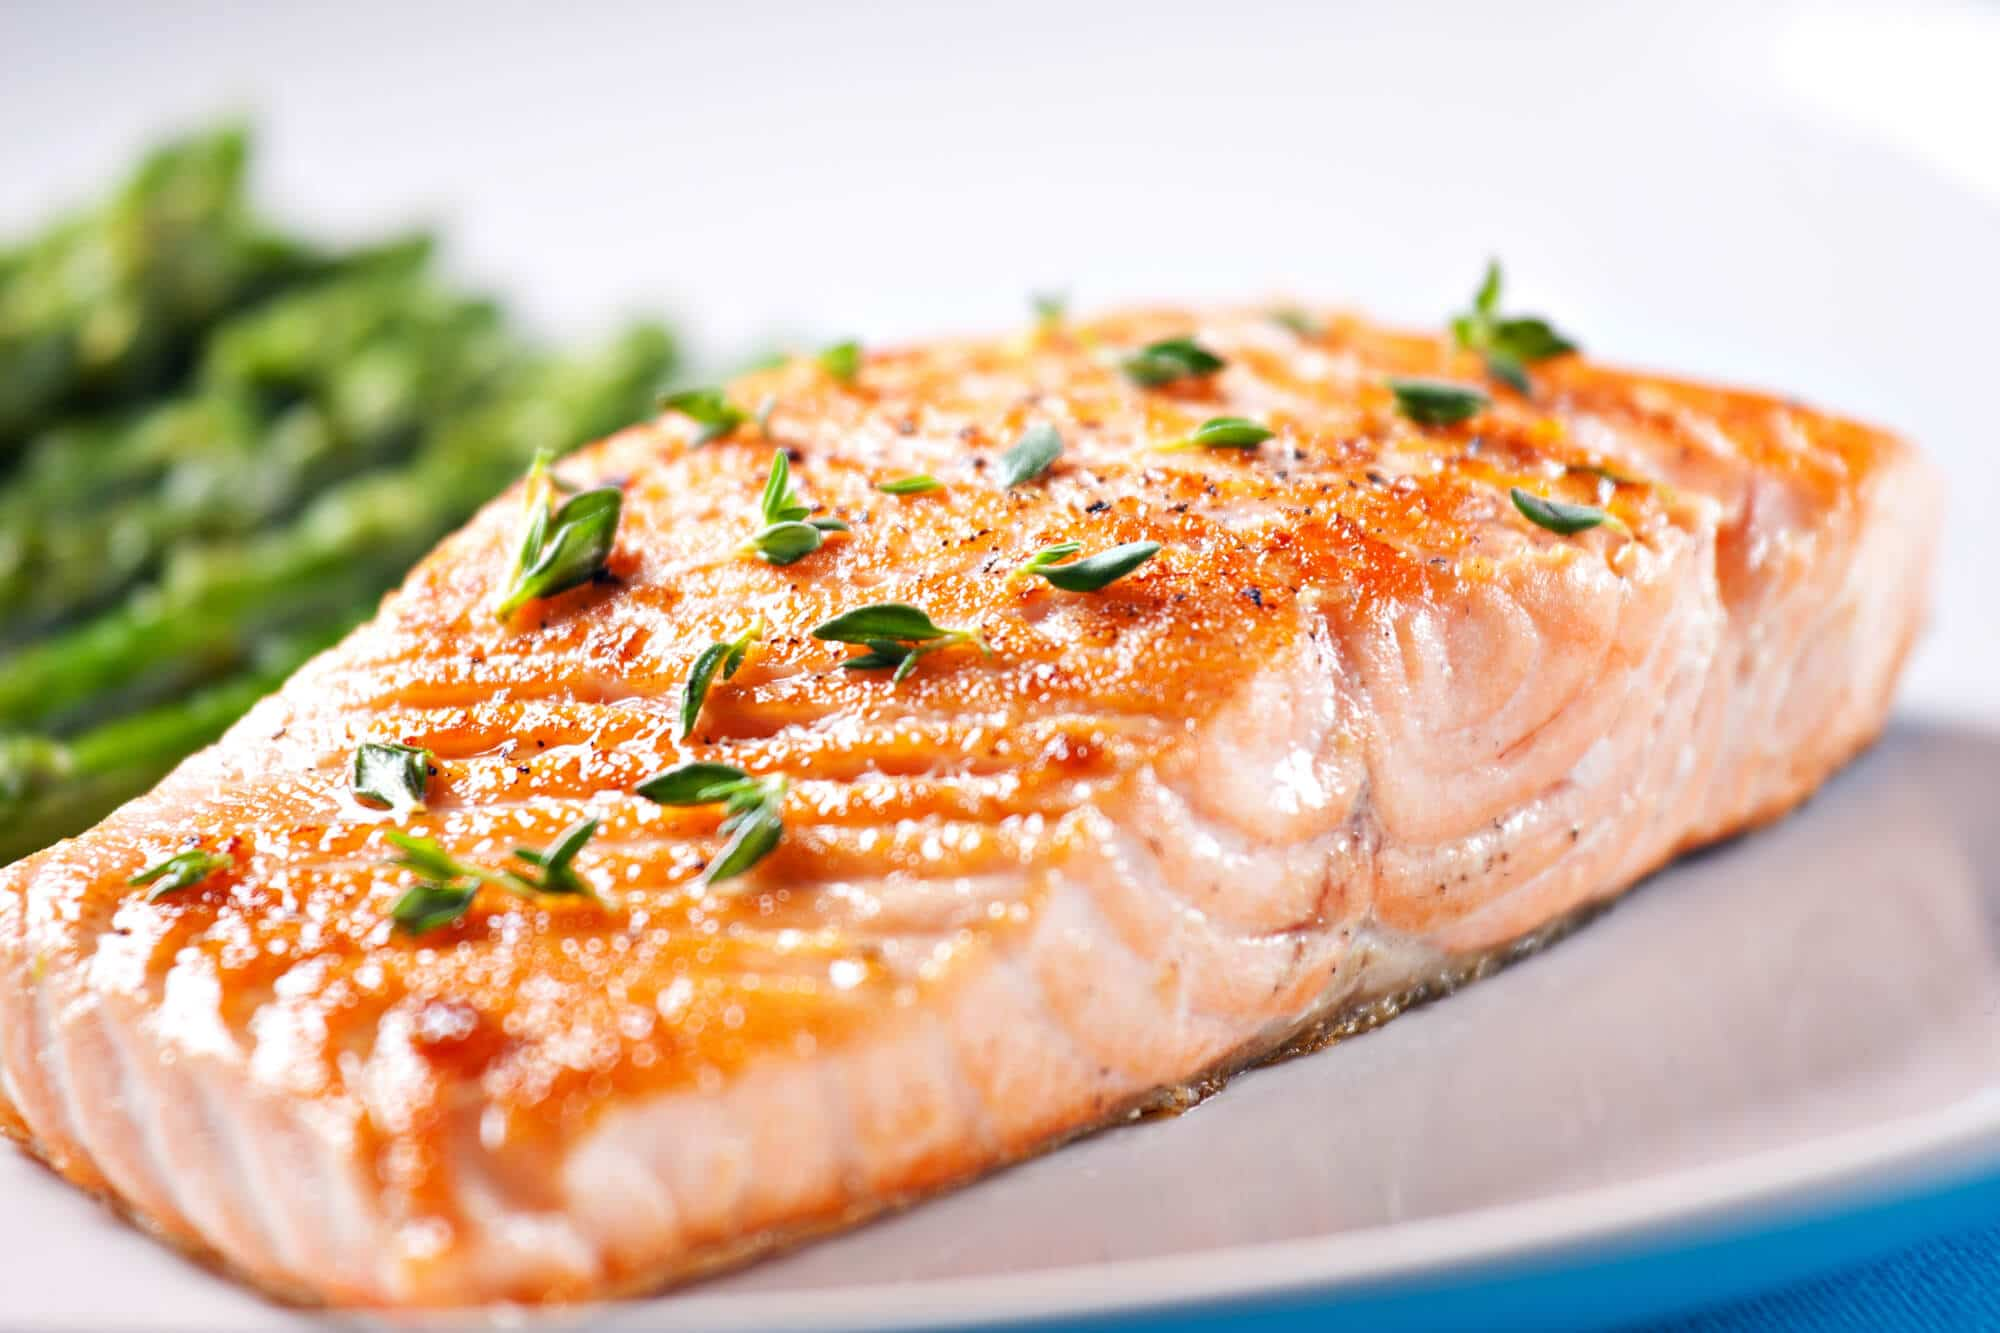 Baked salmon recipe.